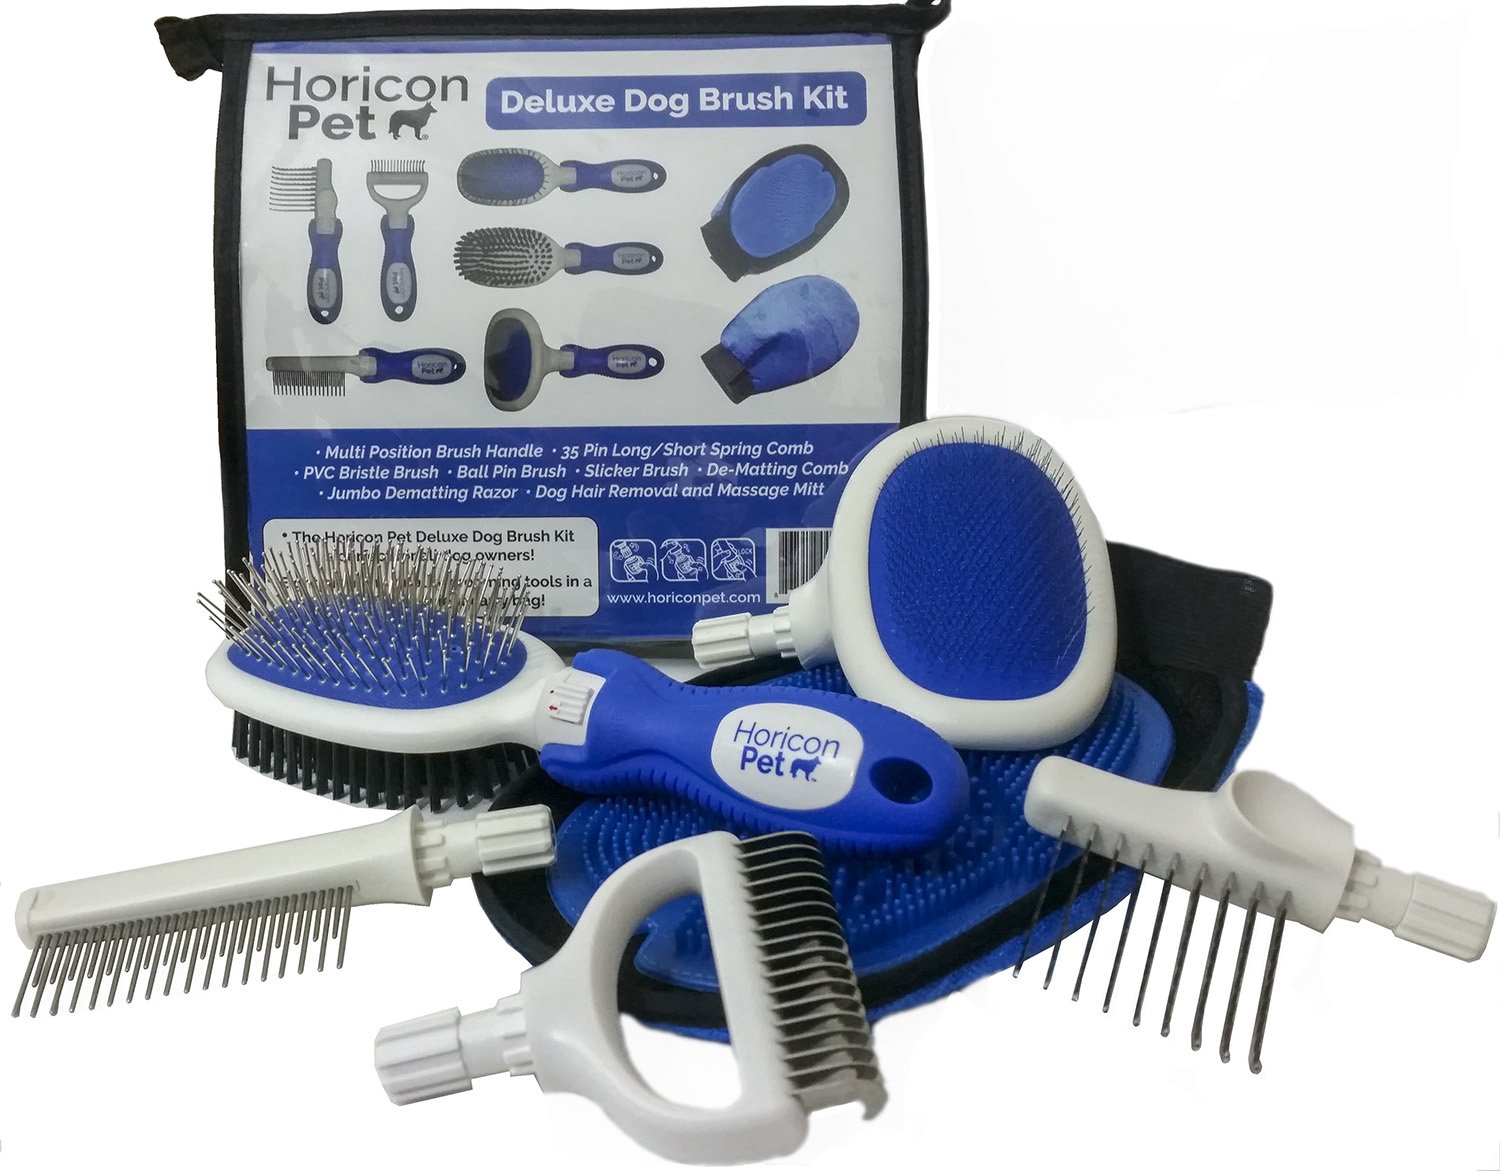 Horicon Pet Deluxe Dog Brush Kit - Interchangeable Dog Grooming Brushes, Dematting/Undercoat Comb, Slicker Brush, De-Matting Razor, Spring Comb, Ball Pin Brush, Bristle Brush